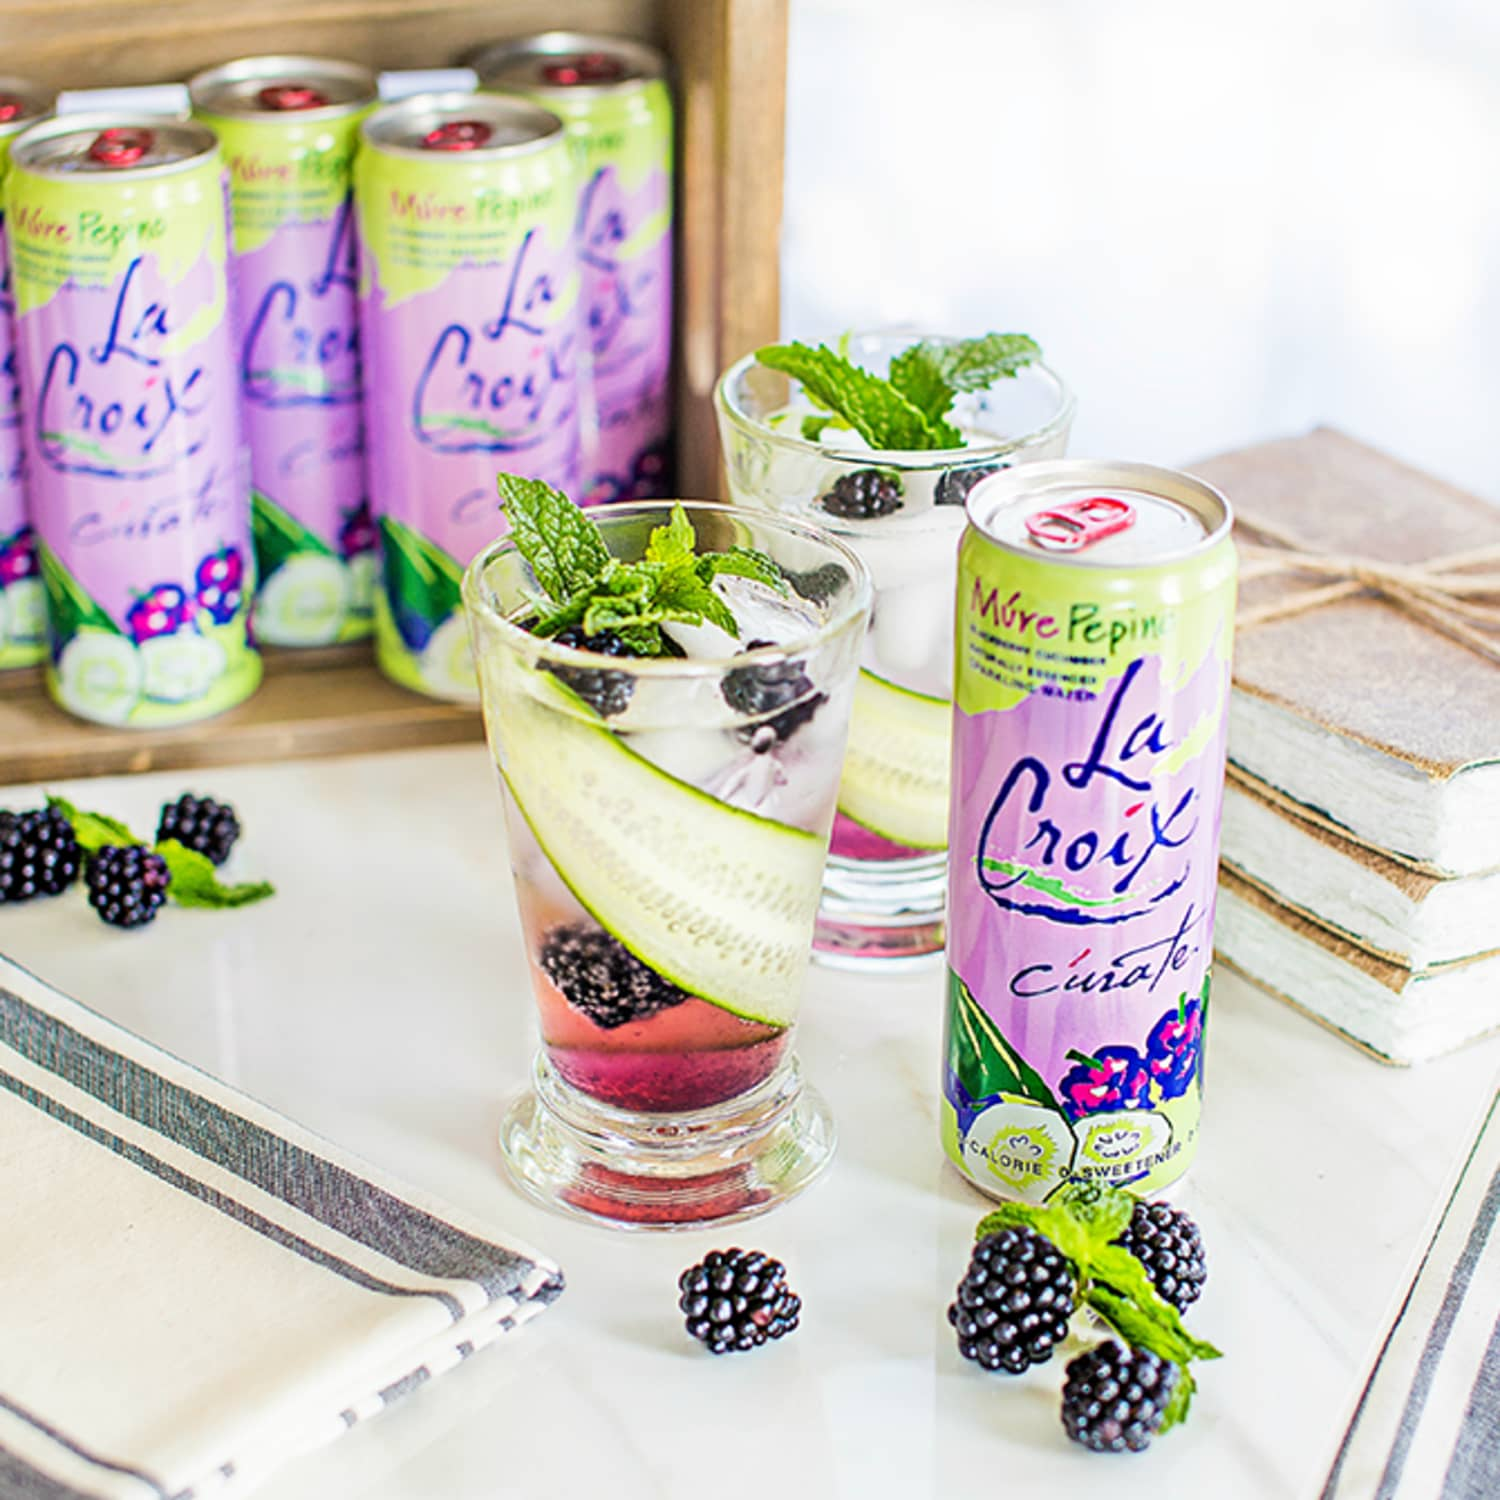 3406c299 Getting Fizzy With It: 11 Things to Buy For Your Home If You Really (& We  Mean Really) Love La Croix